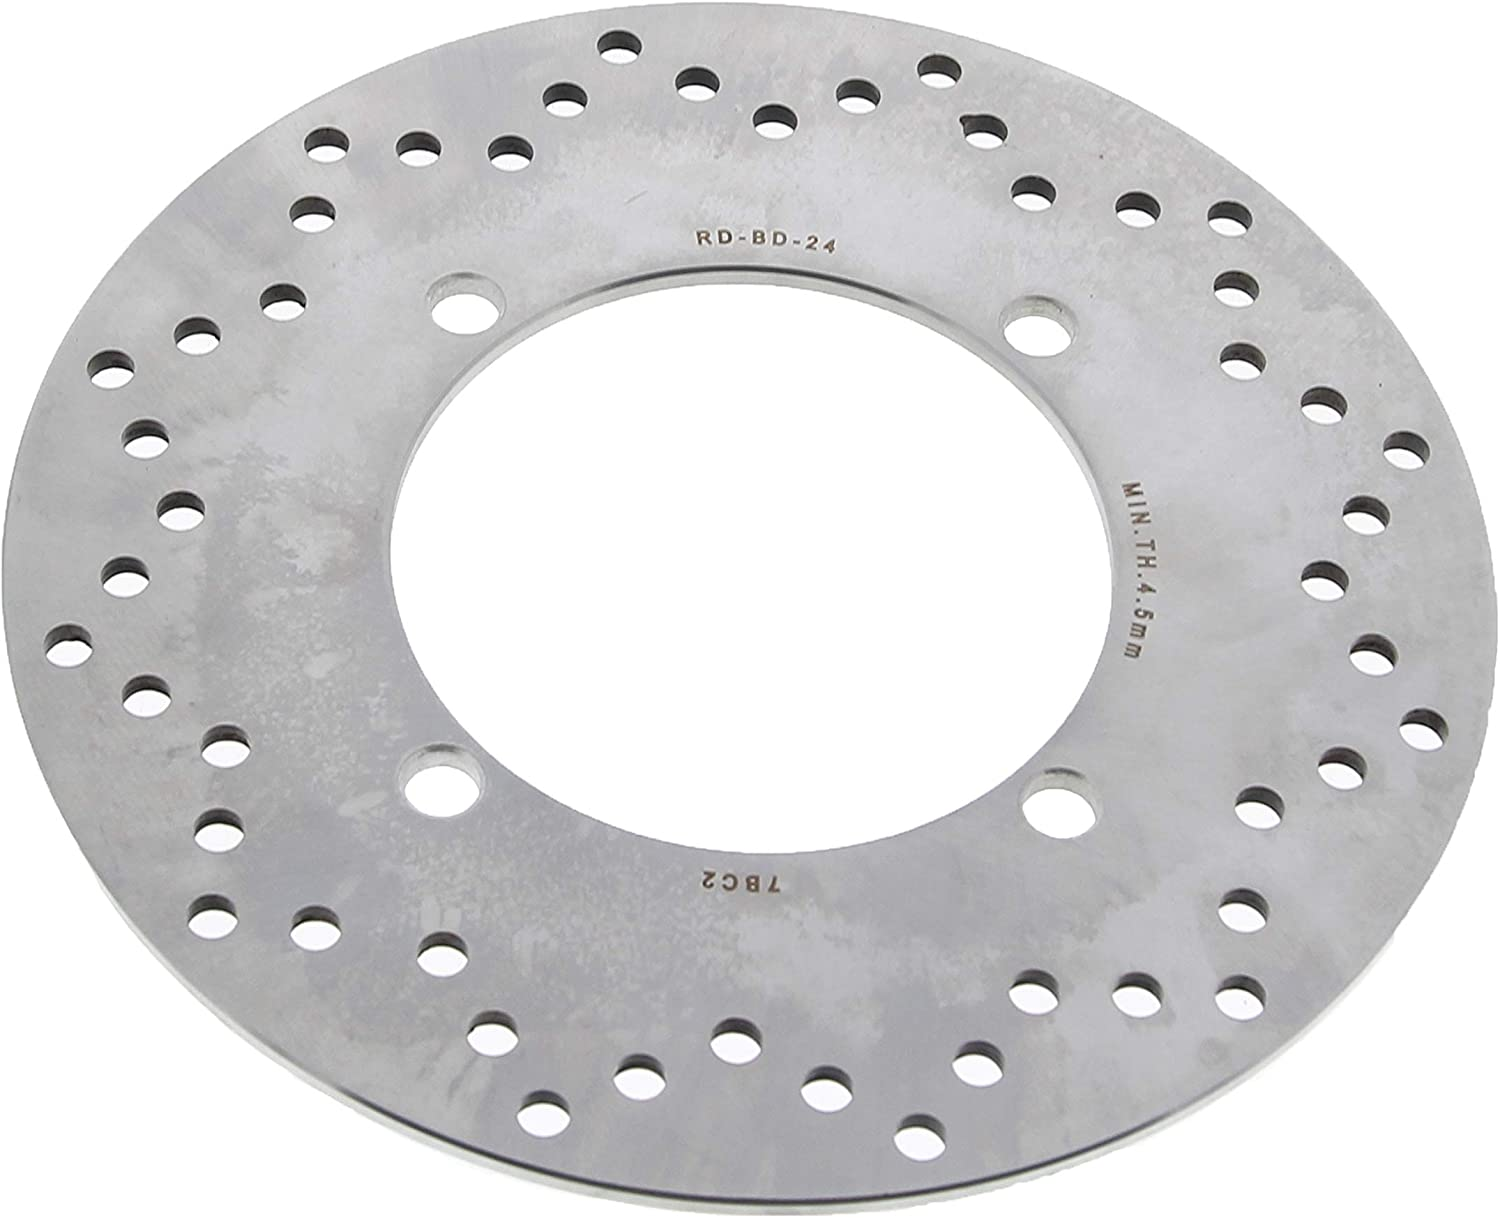 2011-2014 Polaris RZR 800 Razor EFI Front Brake Rotors Disc and Brake Pads